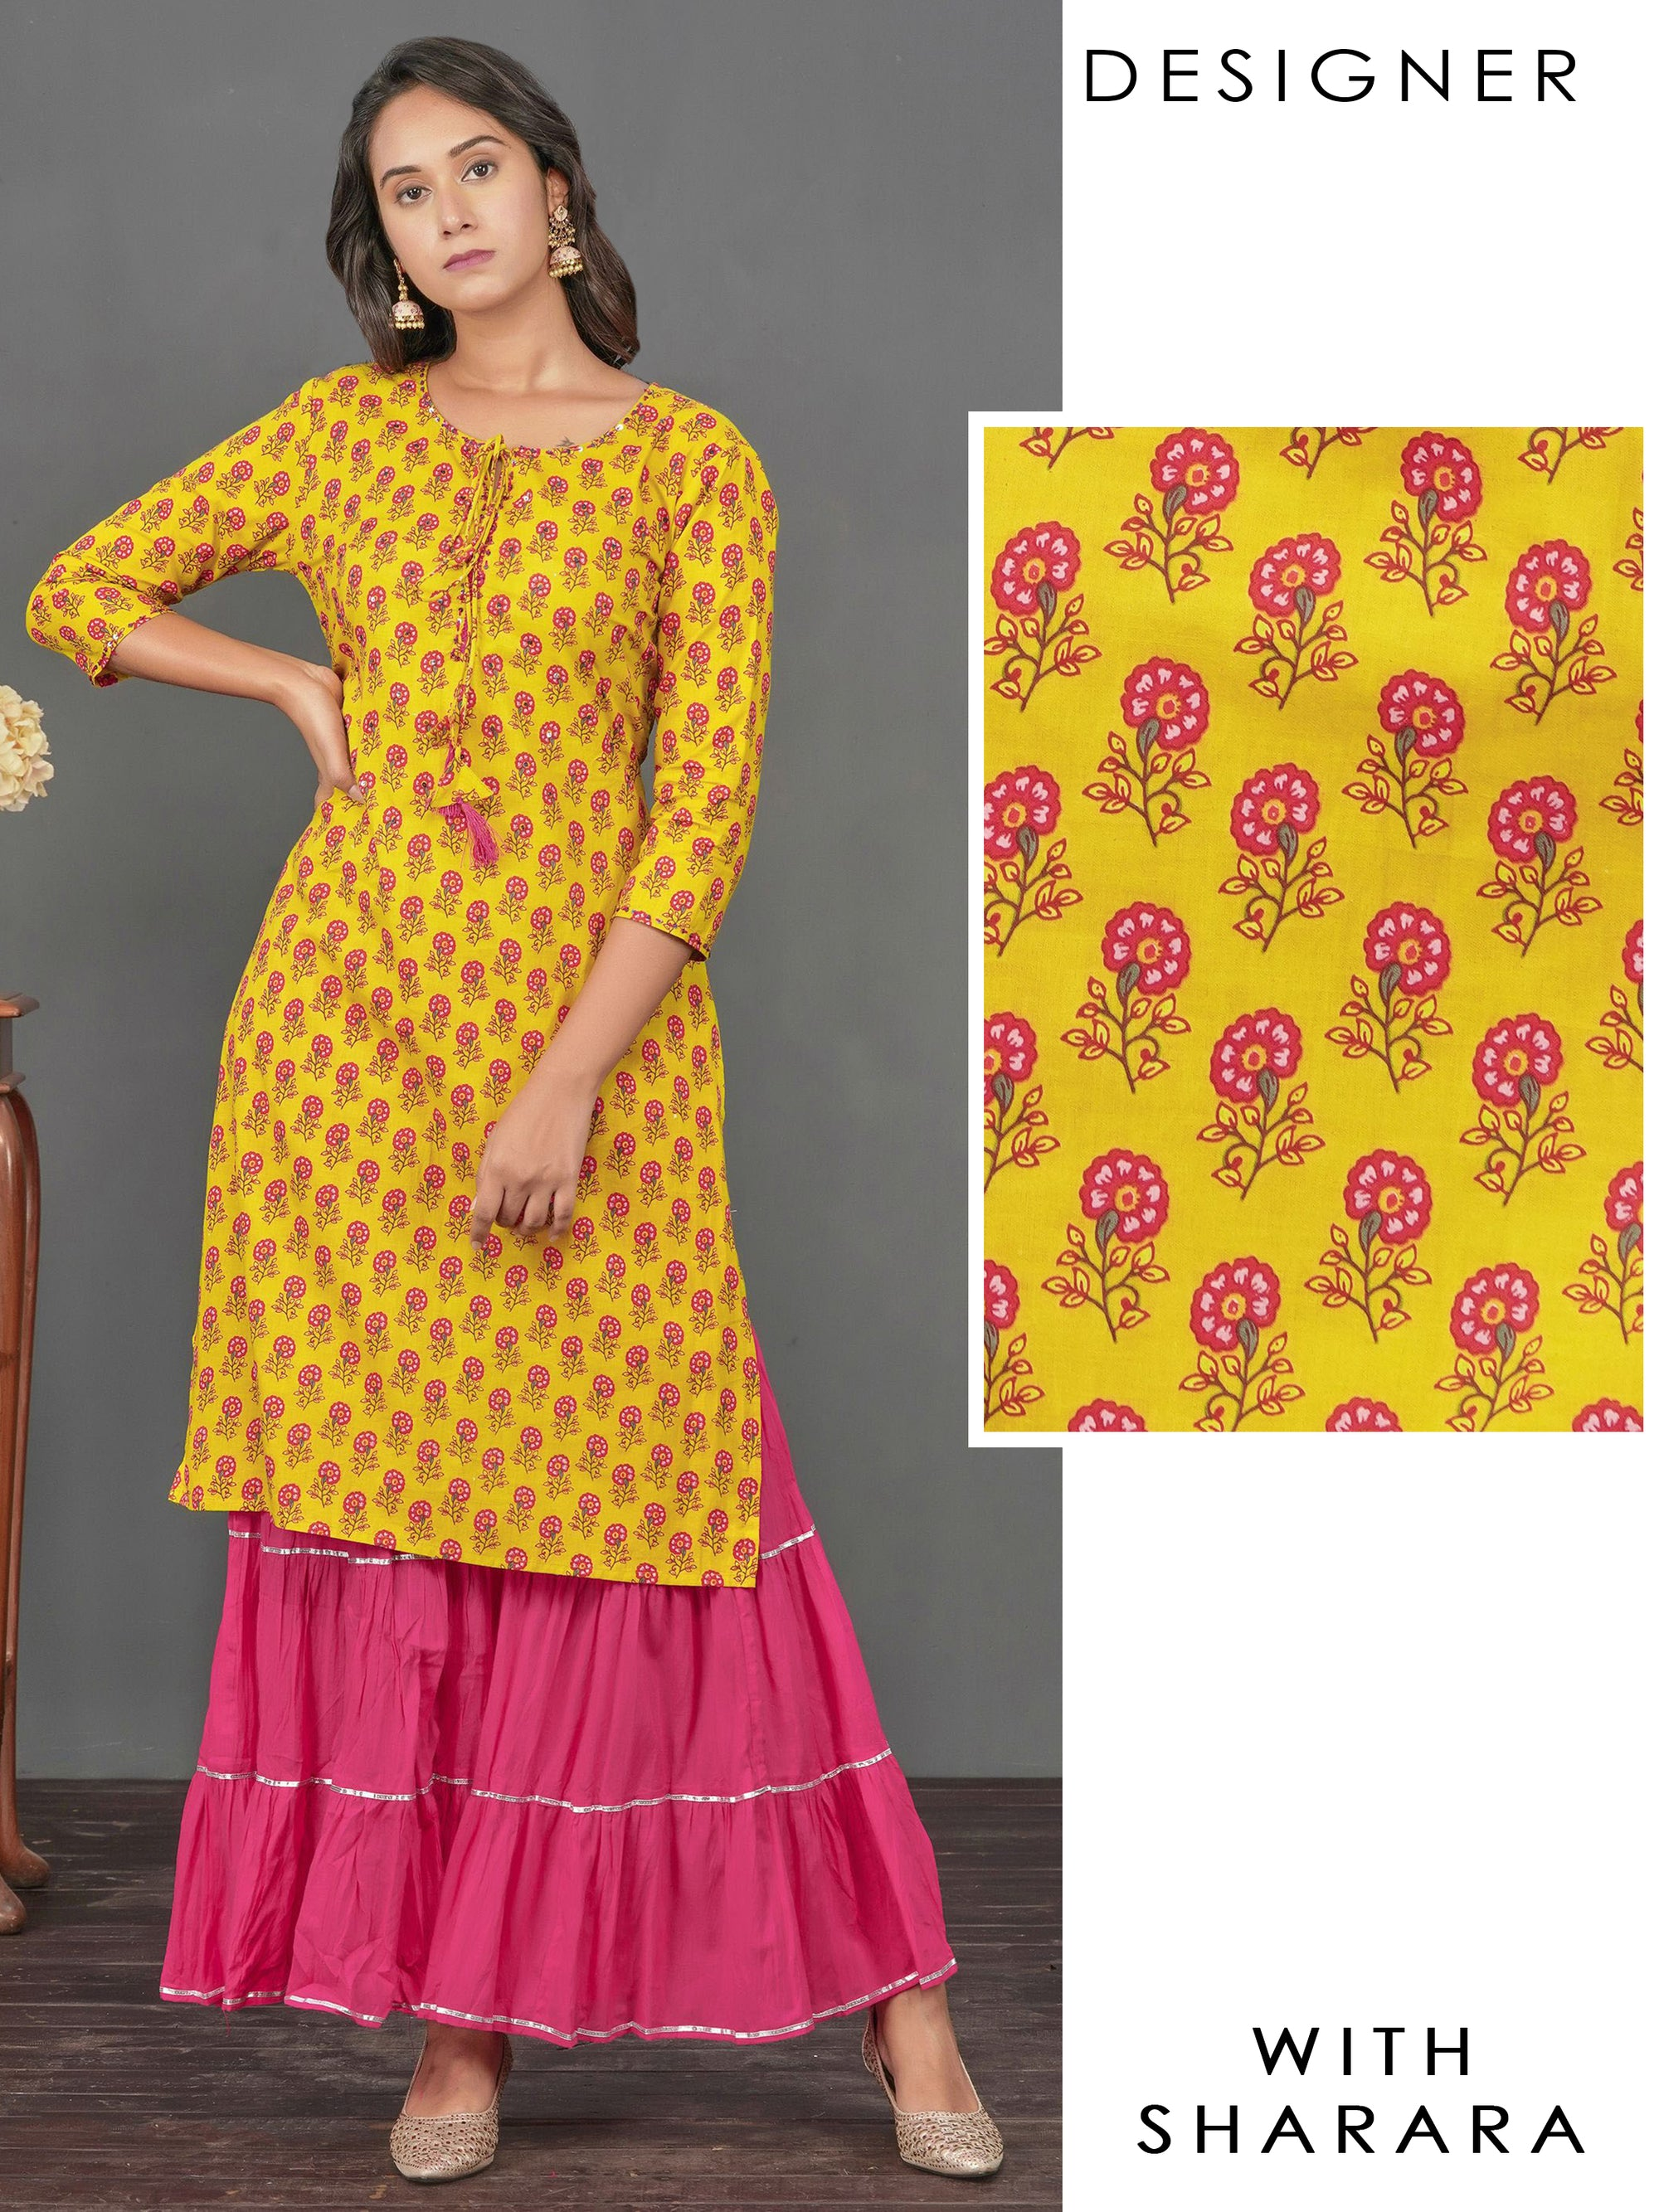 Floral Printed & Sequins Detailed Kurti with Gota Lace Crushed Sharara – Mustard